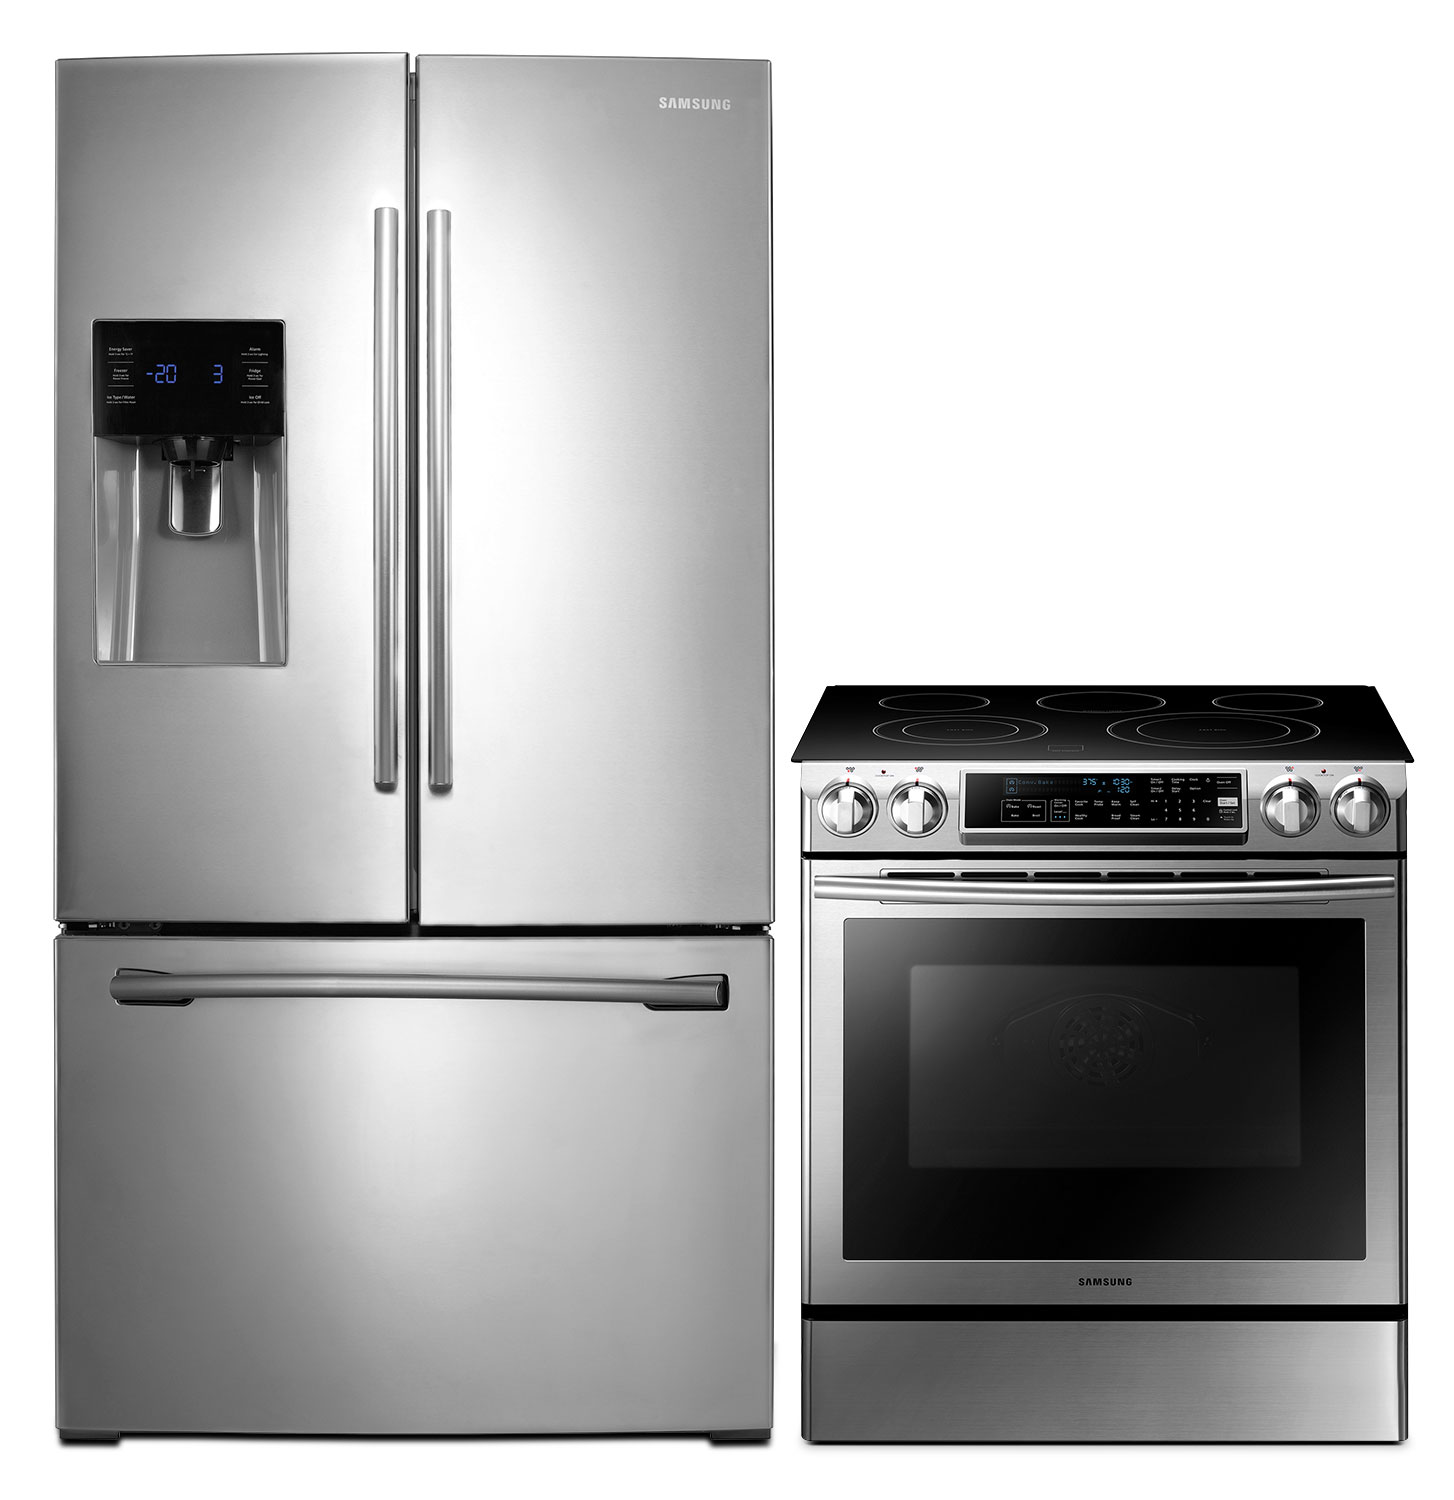 Samsung 26 Cu. Ft. French-Door Refrigerator and 5.8 Cu. Ft. Electric Range – Stainless Steel